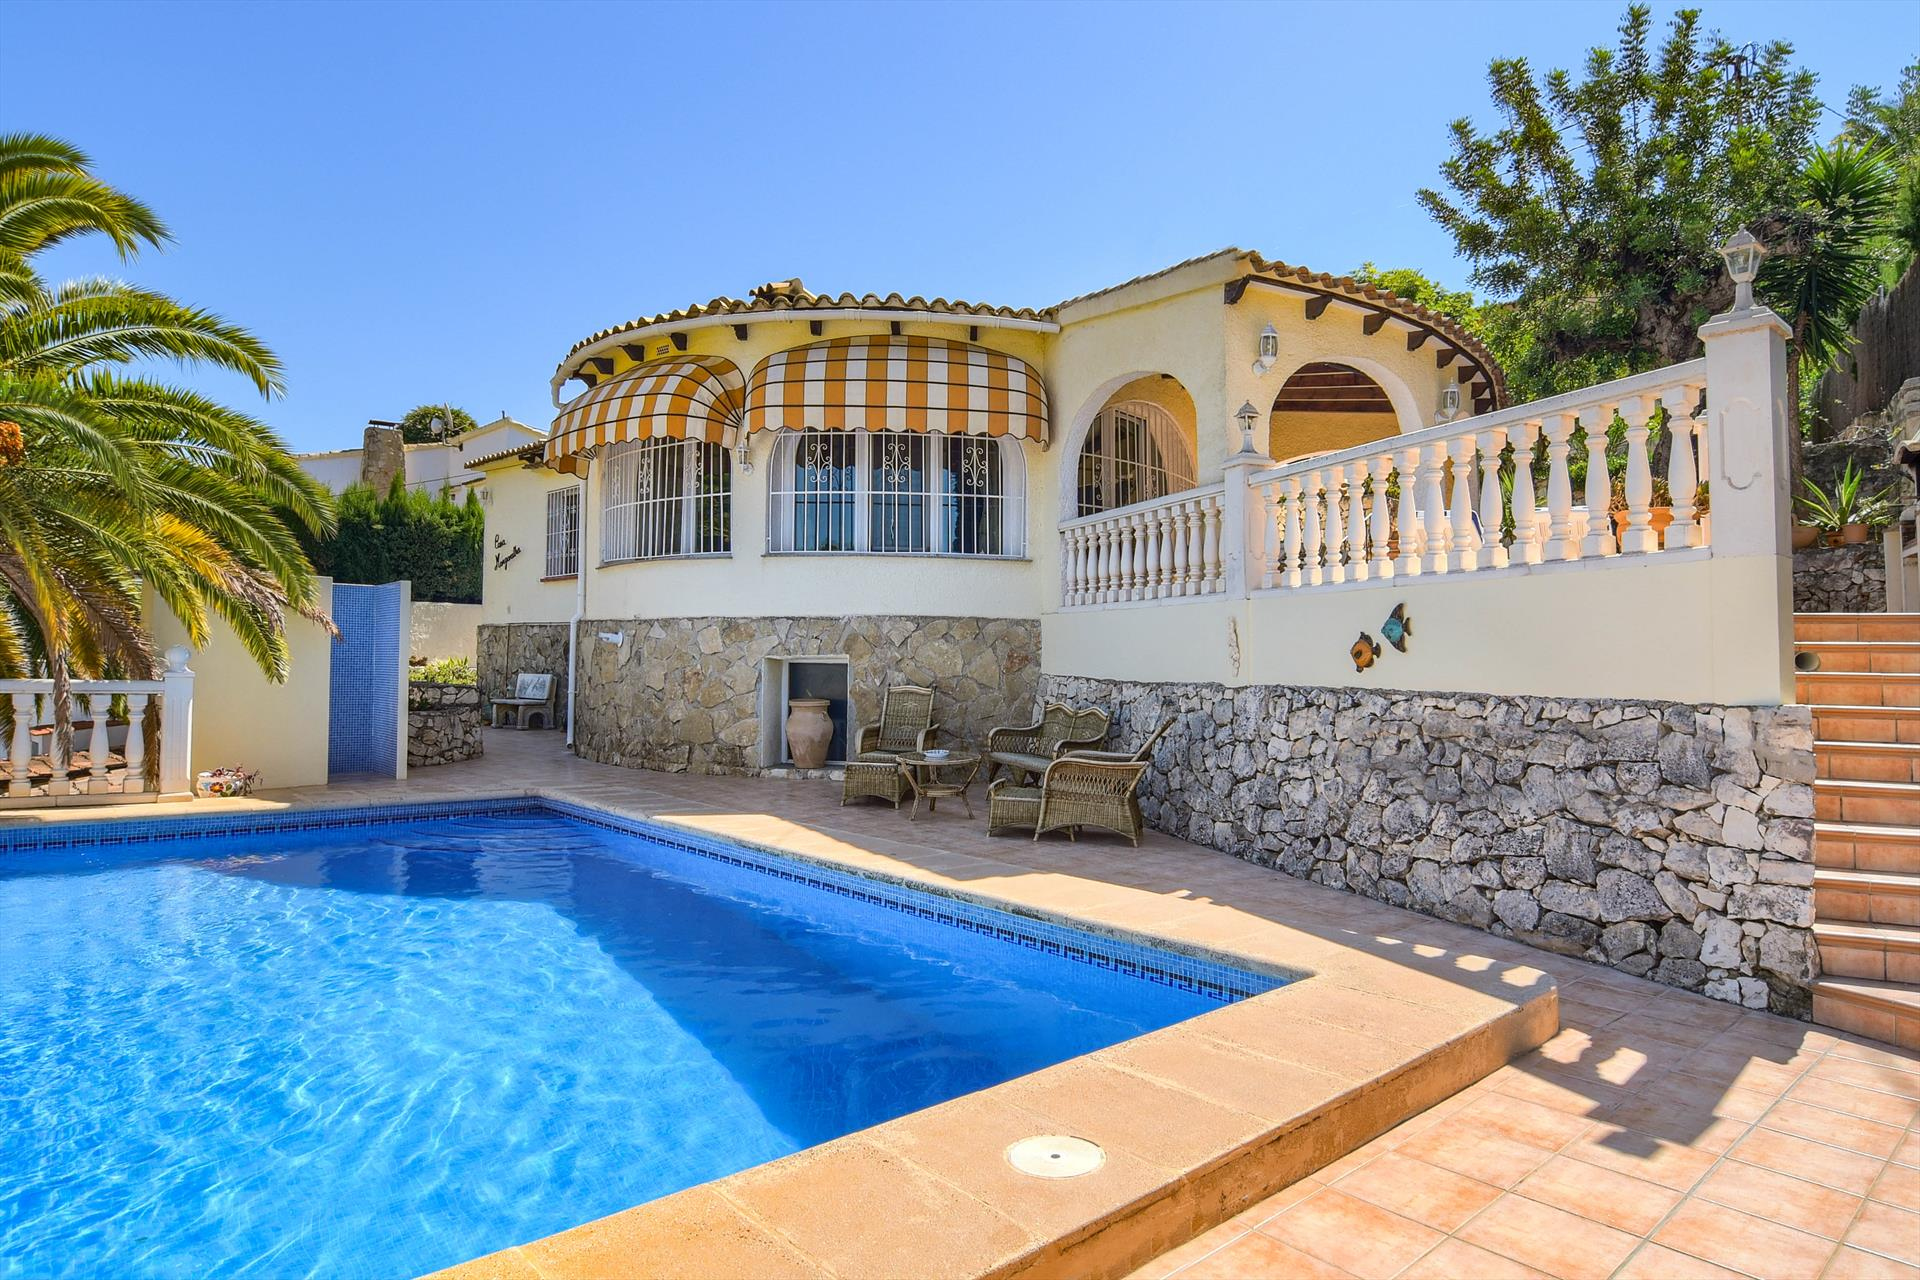 Margaritha, Beautiful and cheerful villa in Benissa, on the Costa Blanca, Spain  with private pool for 6 persons.....